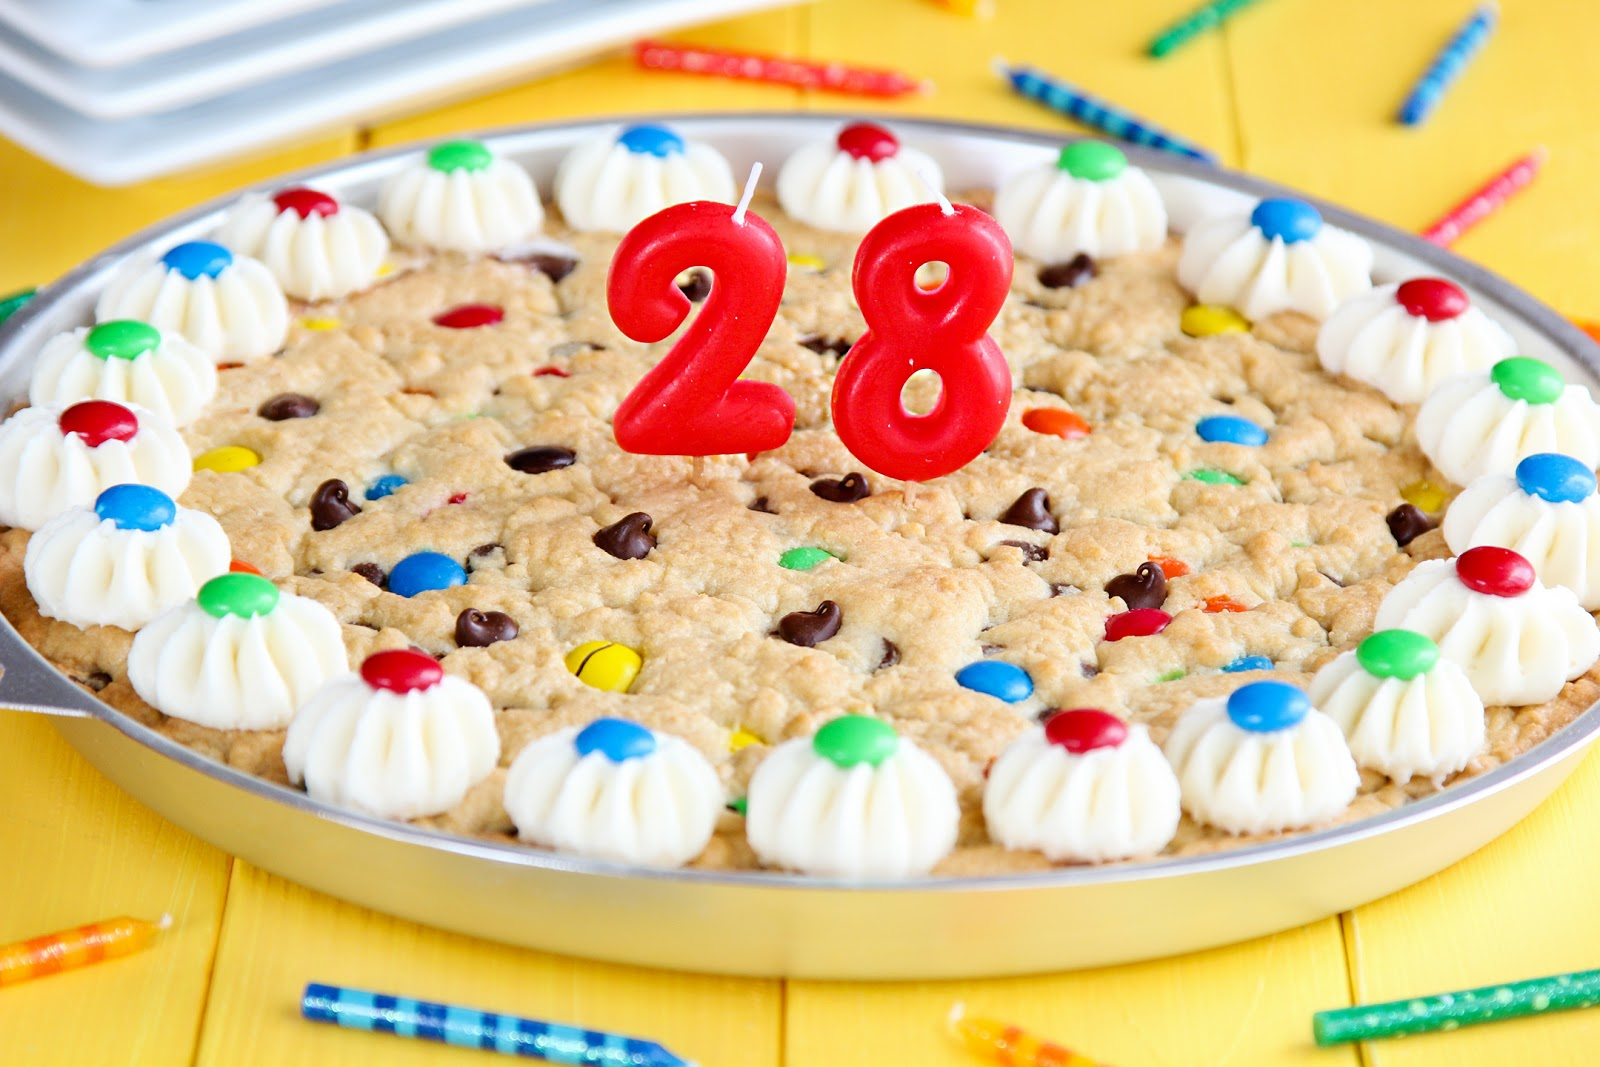 Groovy Hes 28 A Cookie Cake Life Made Simple Funny Birthday Cards Online Elaedamsfinfo